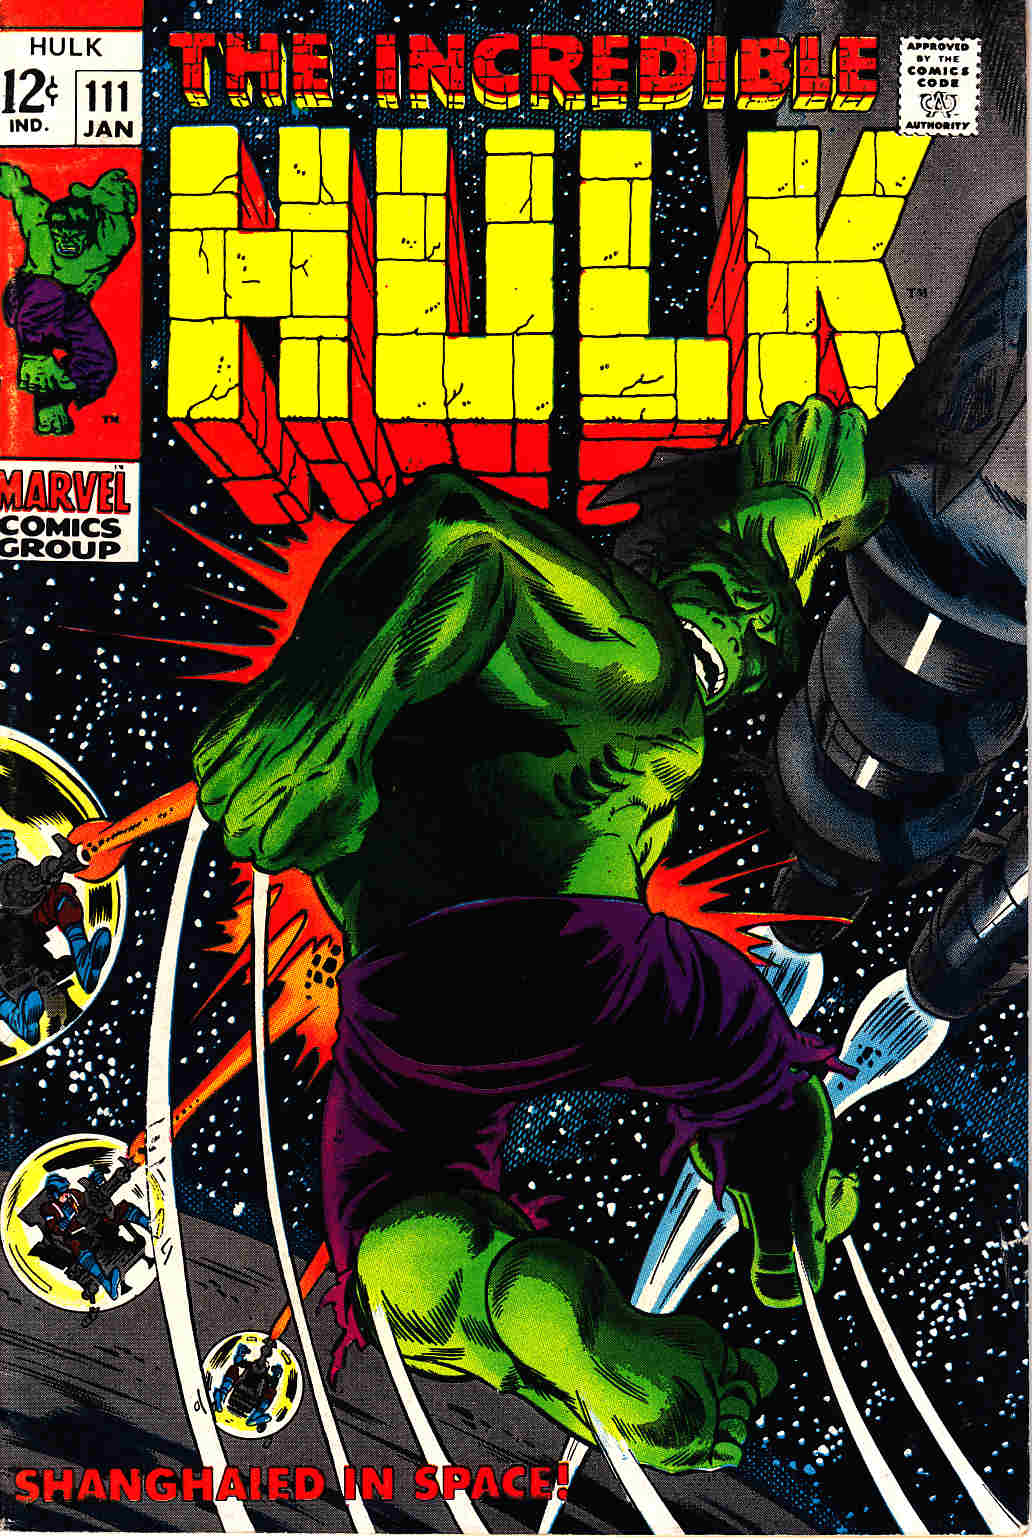 Incredible Hulk #111 Fine Plus (6.5) [Marvel Comic] THUMBNAIL